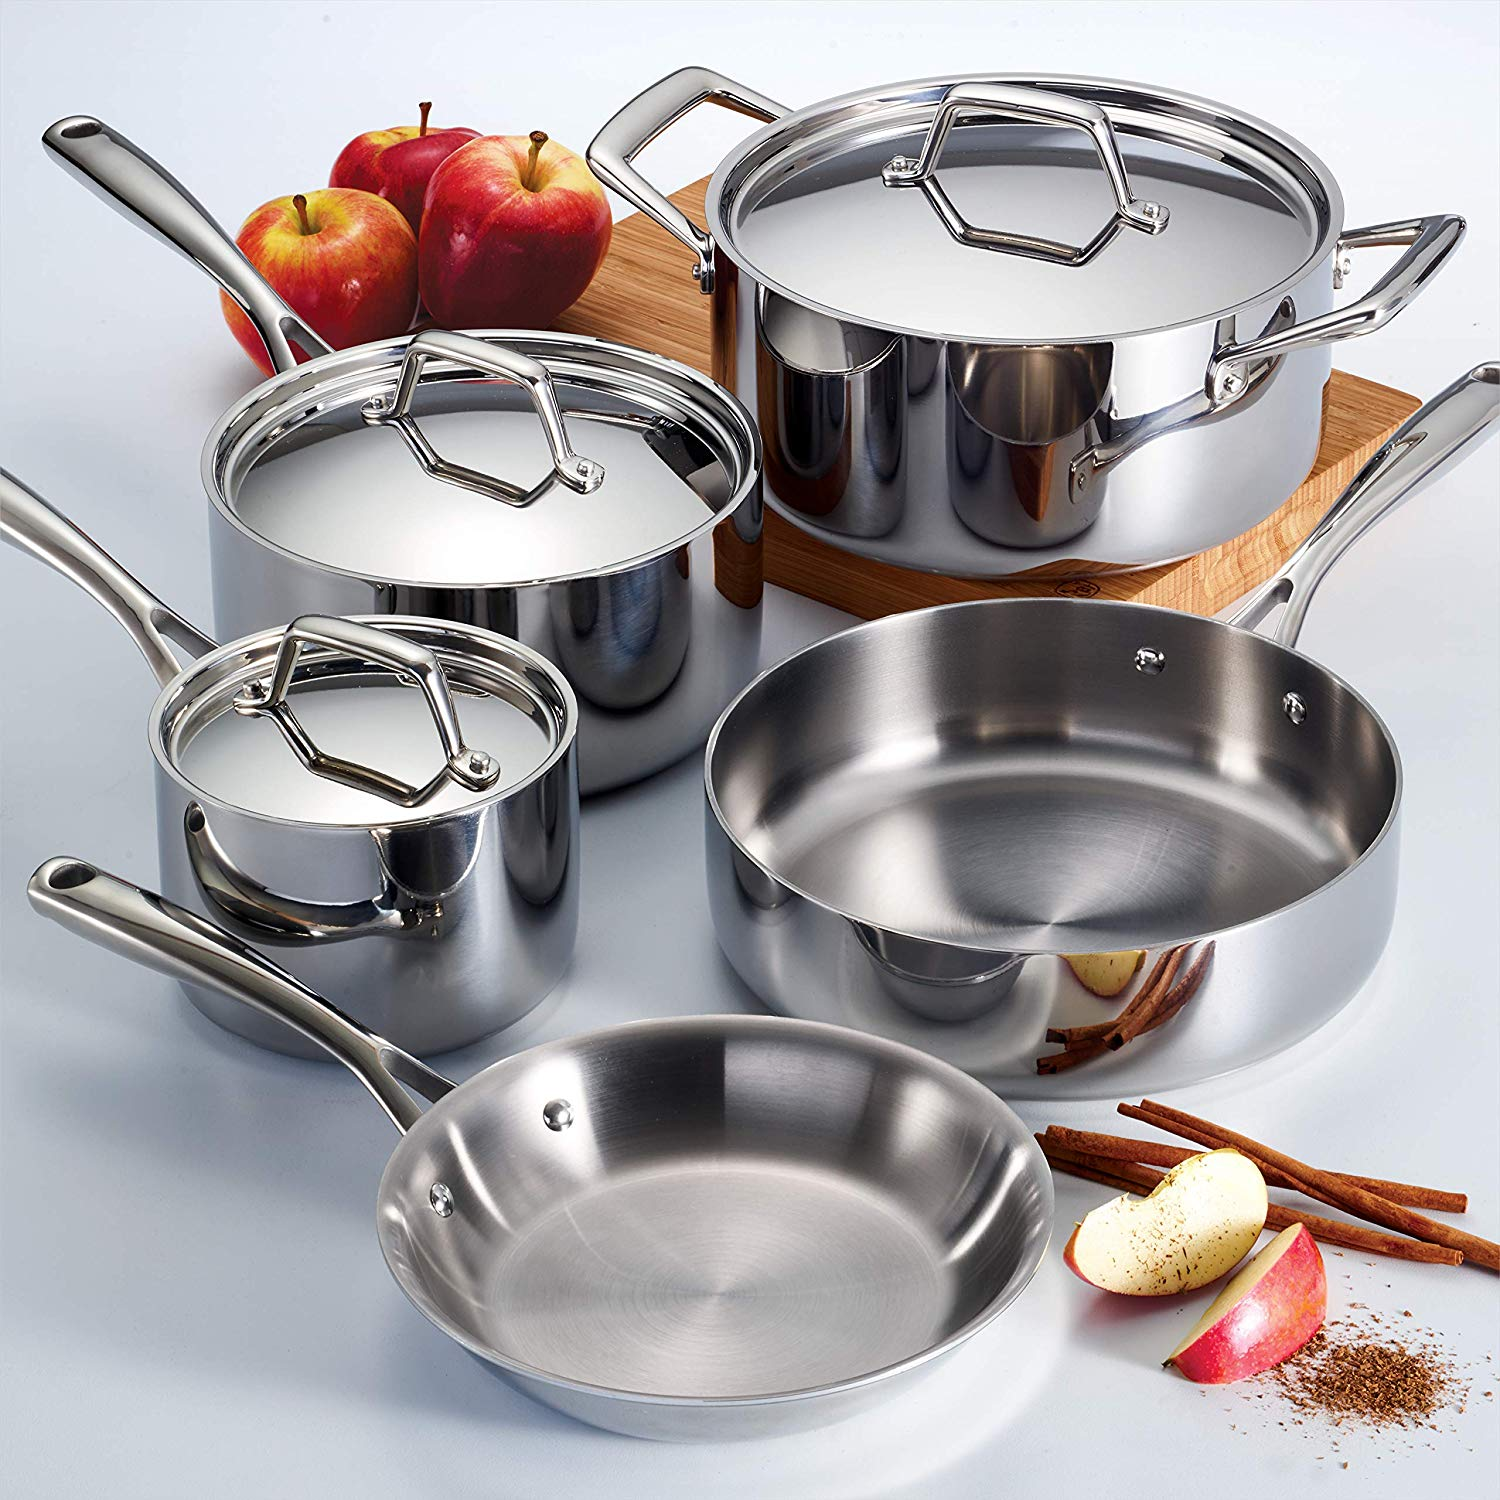 Tramontina Tri-Ply Clad Stainless Steel, 8-Piece set for $91